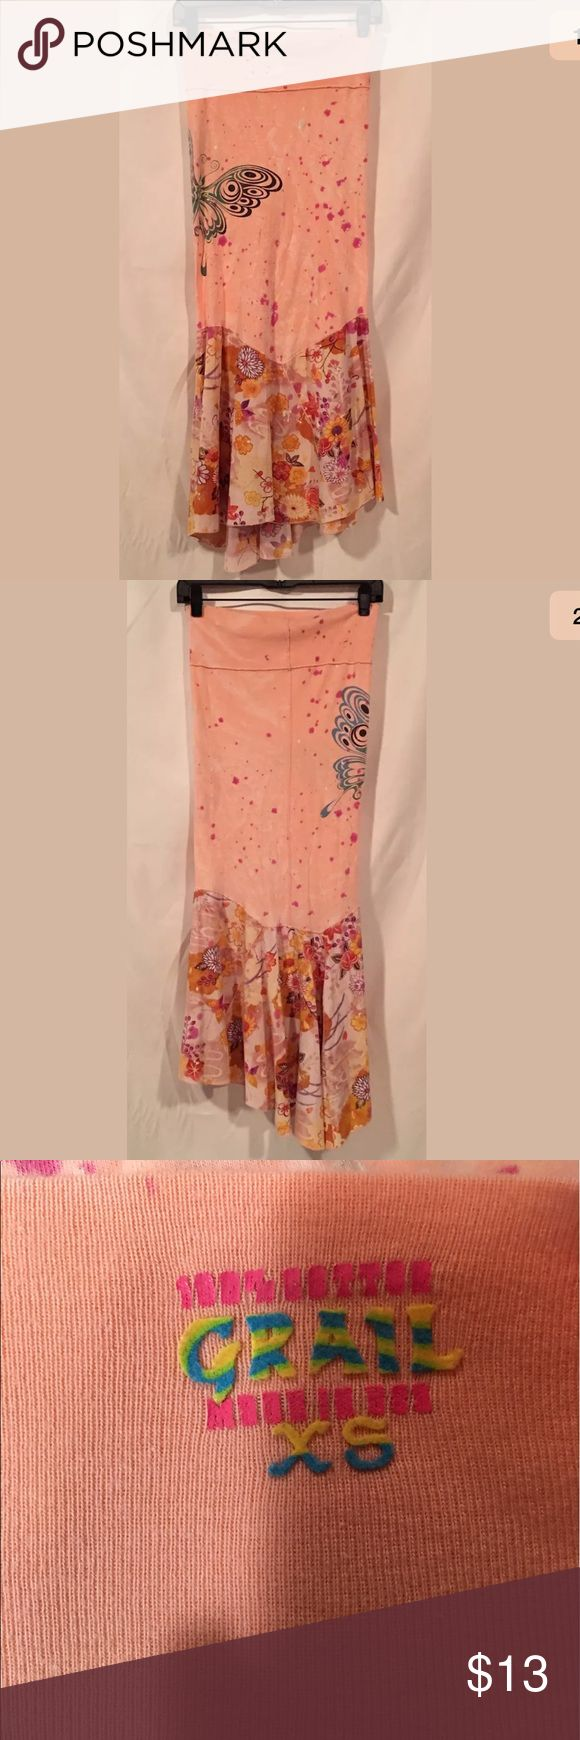 Grail 100% Cotton Maxi Skirt Size XS Grail 100% Cotton Maxi Skirt Size XS. See pics for minor flaws on waist. Grail Skirts Maxi